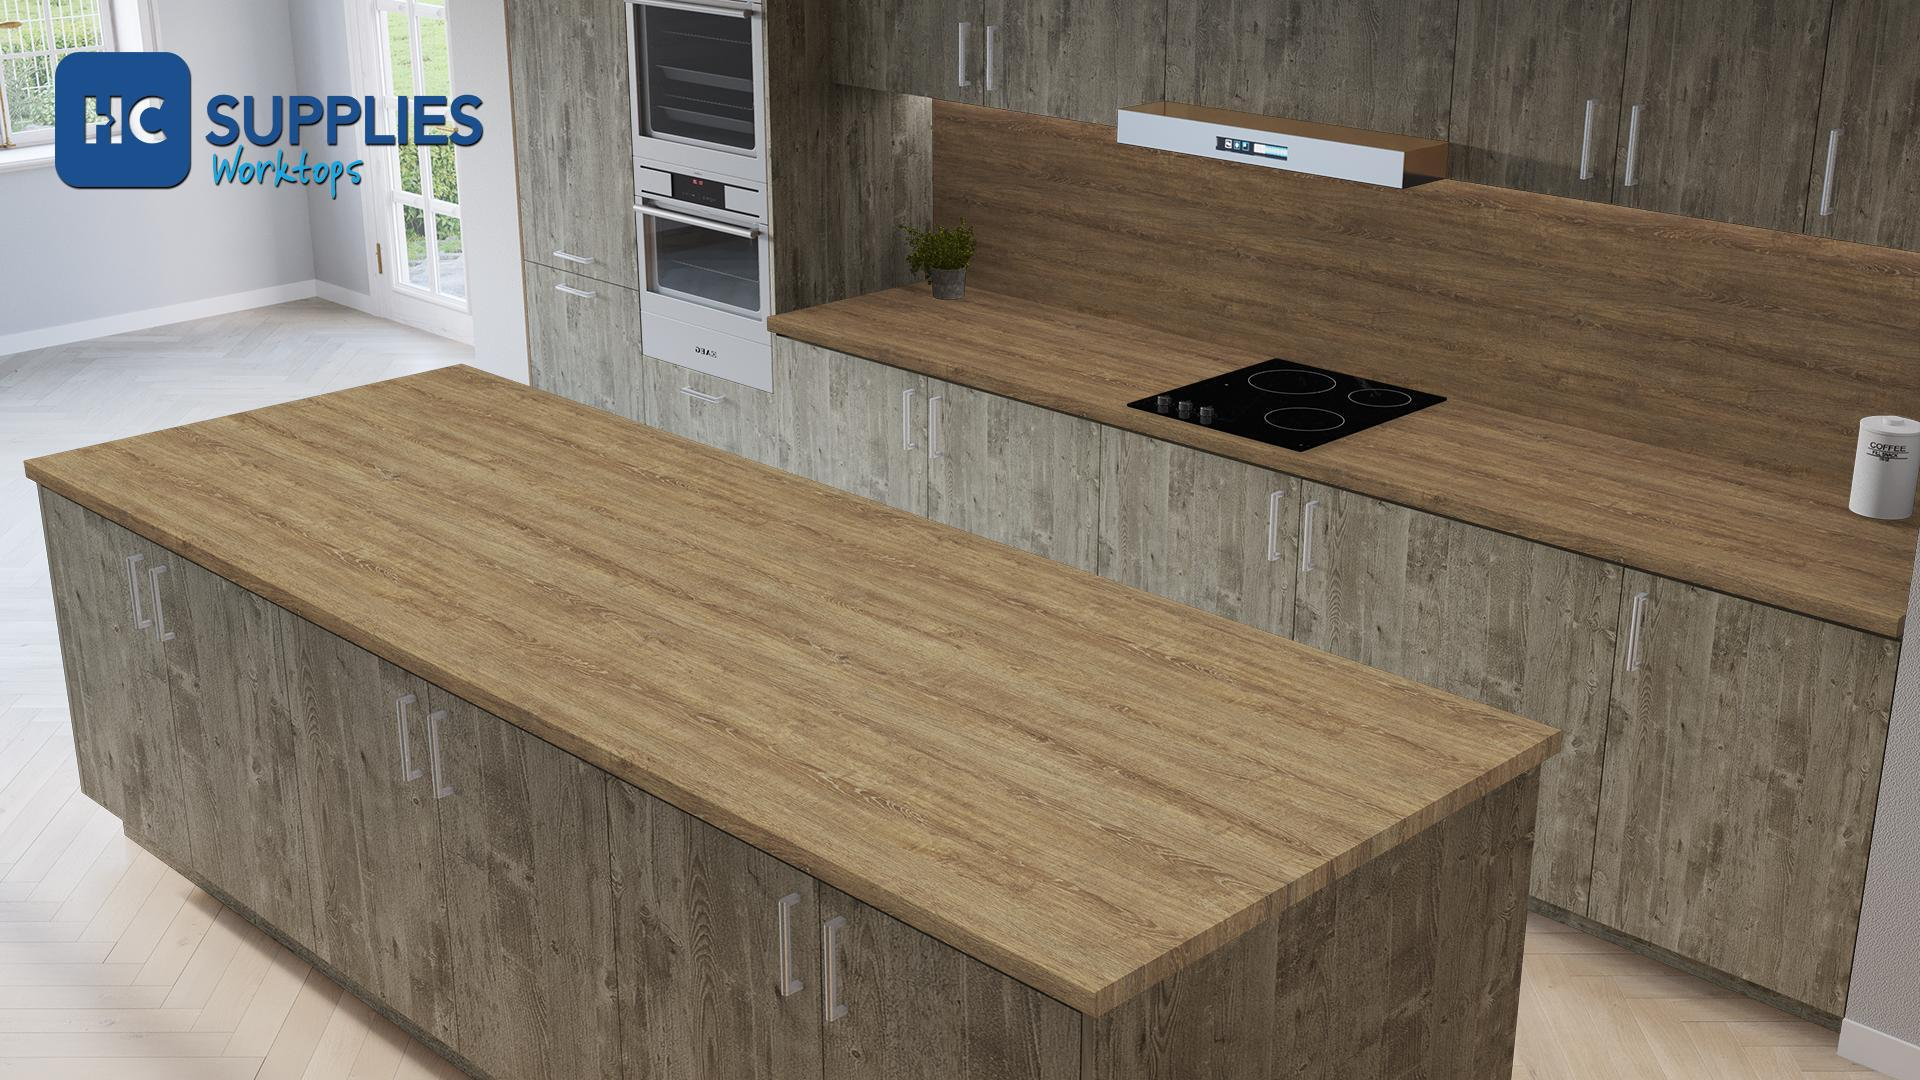 Duropal Chapel Oak  Worktop Product Image